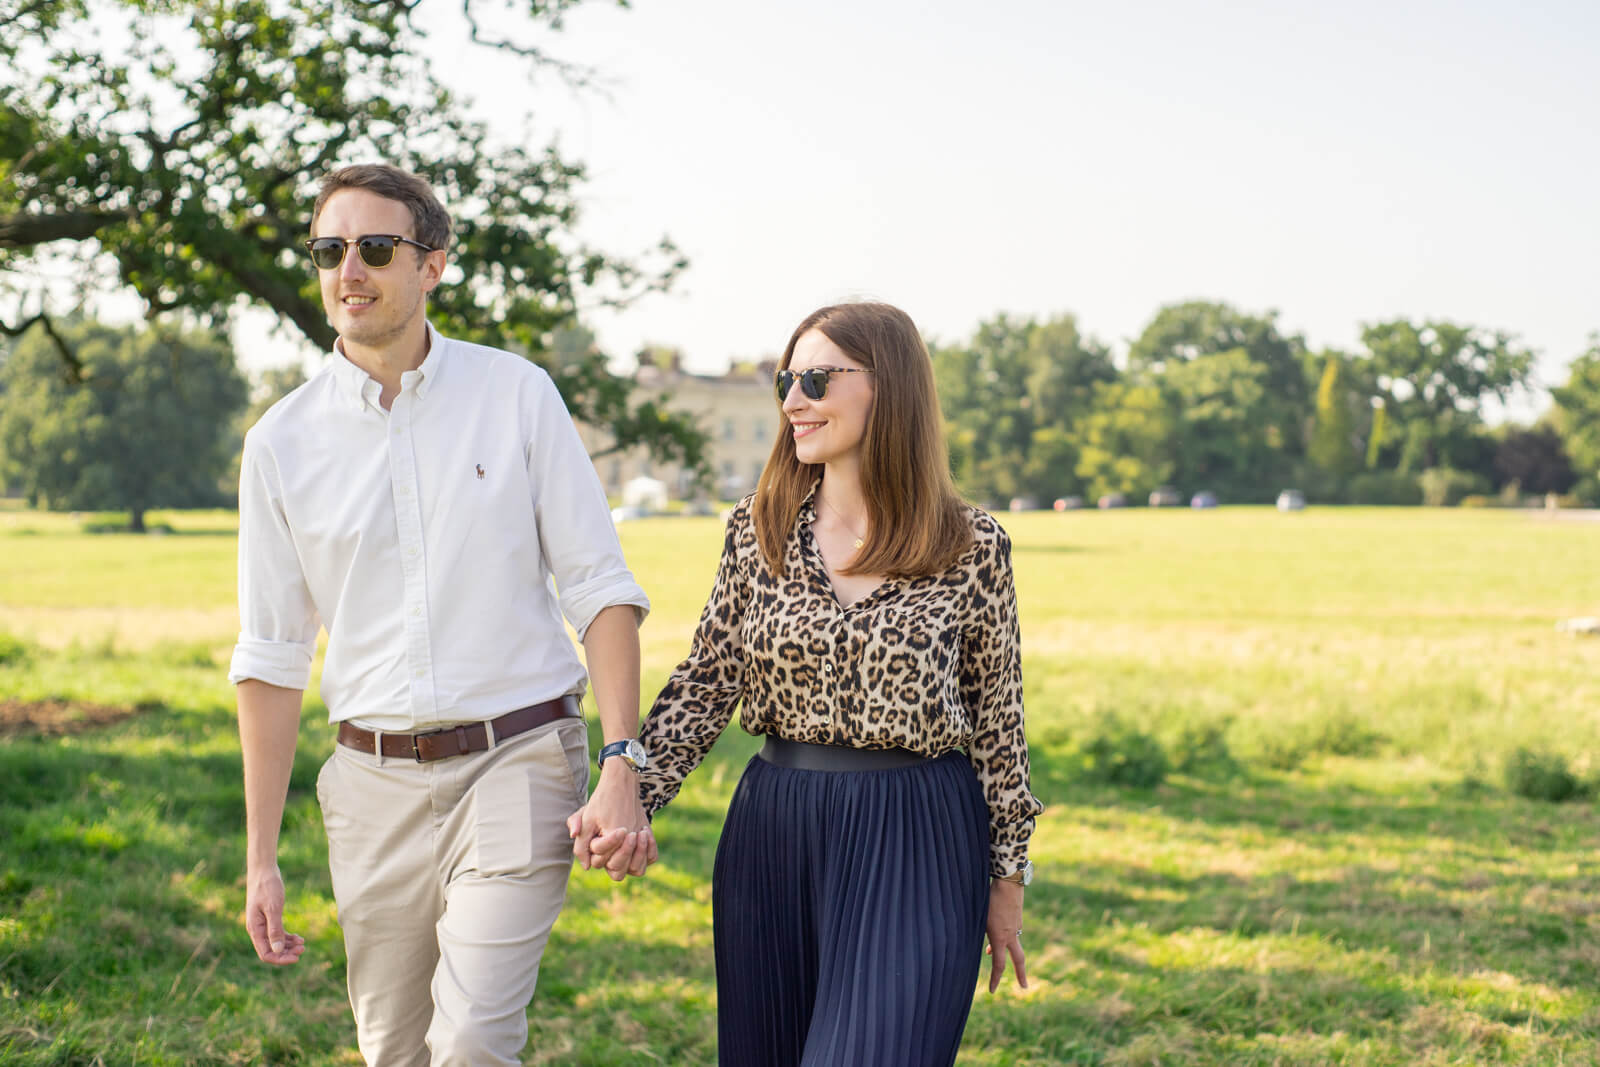 Couple walking together on a sunny day wearing sunglasses